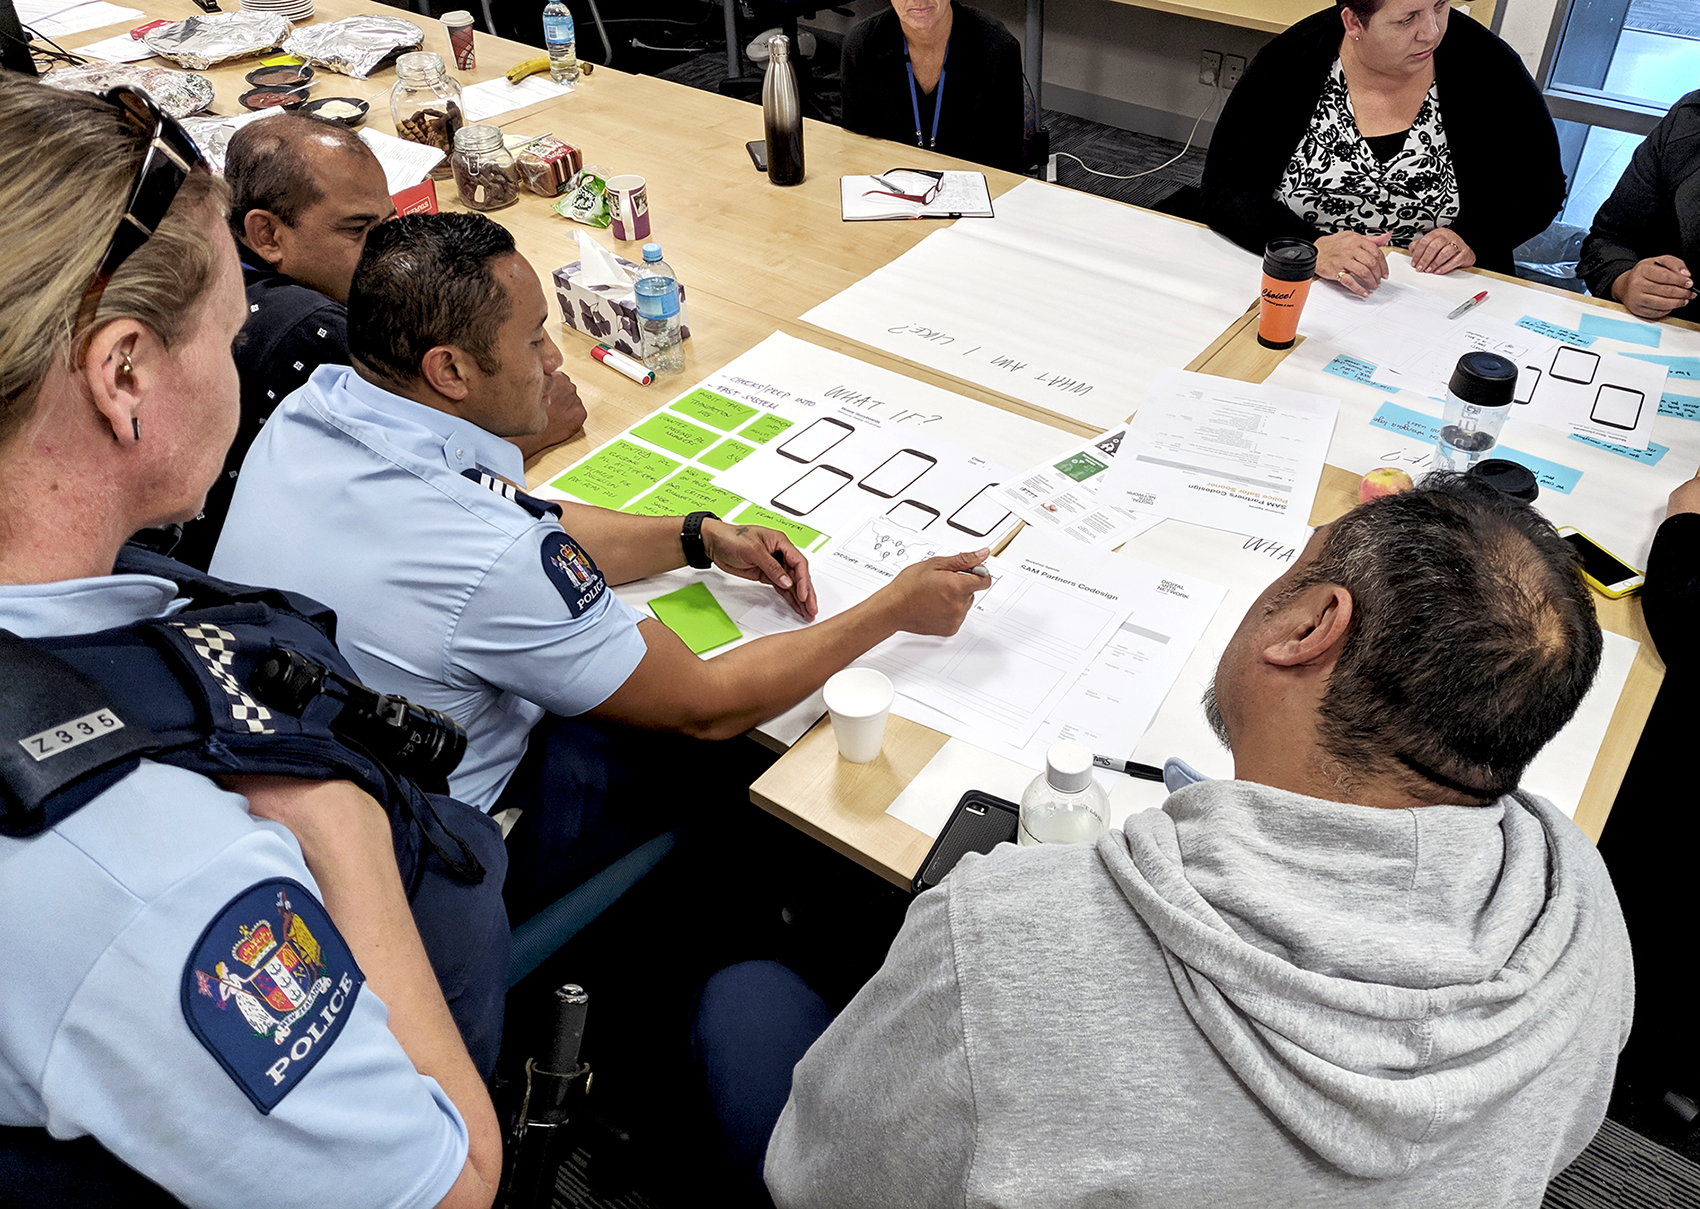 New Zealand police and staff participate in co-design activities